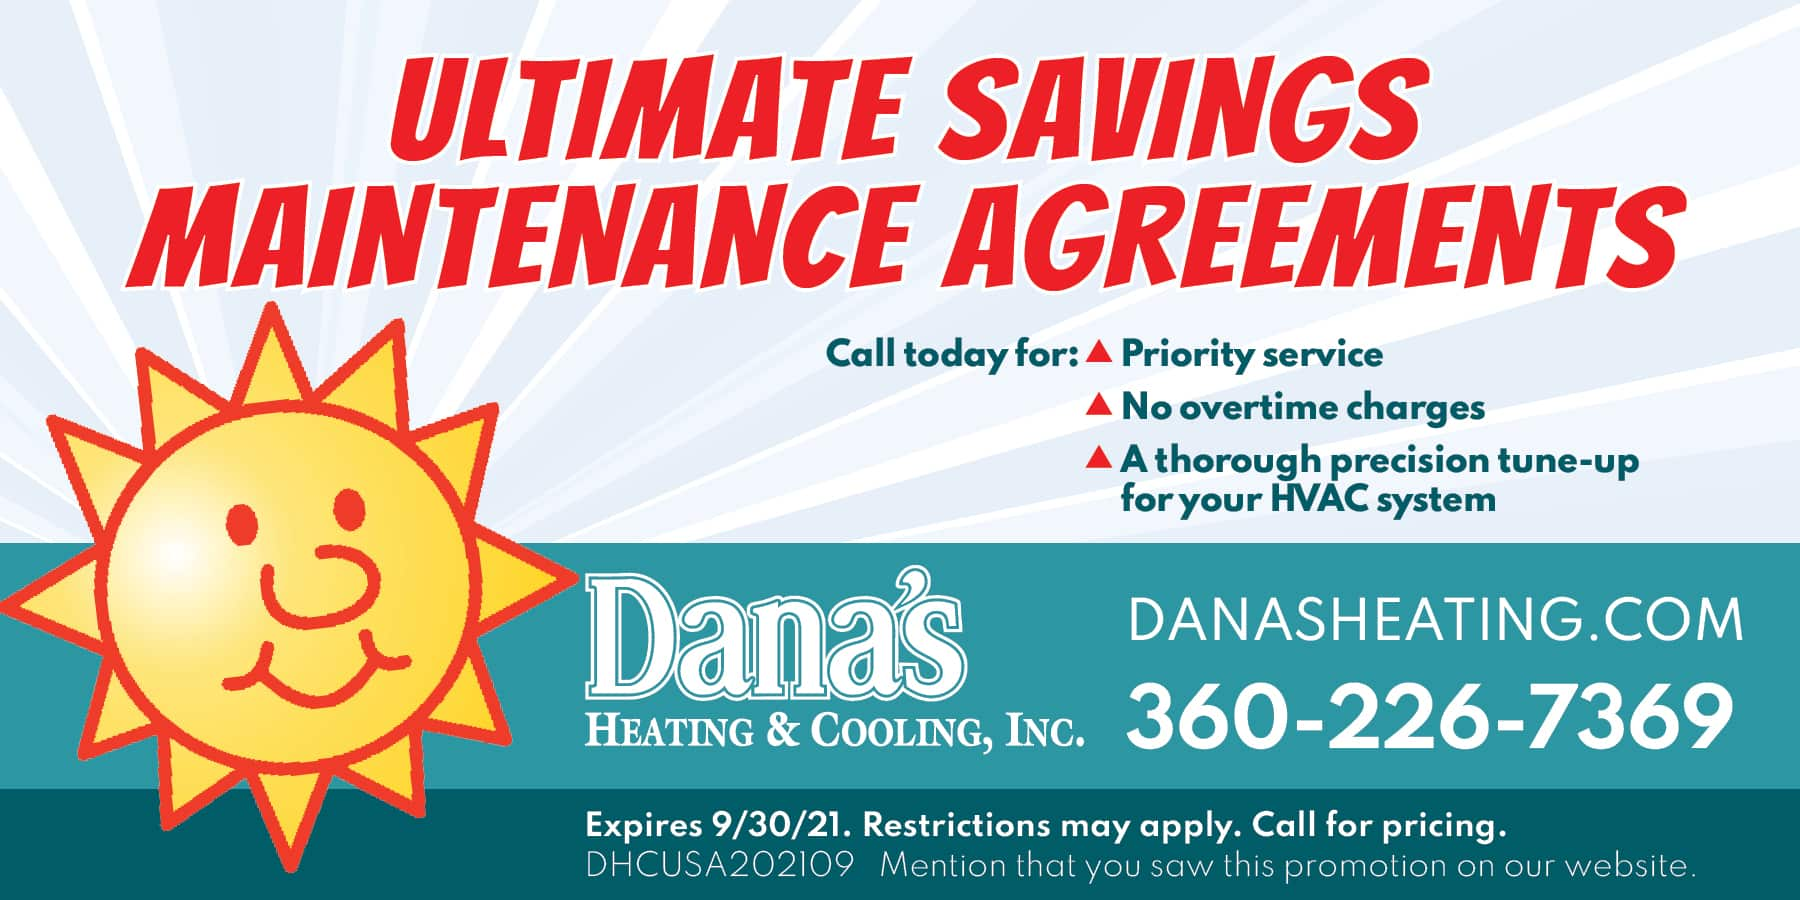 Ultimate Savings Maintenance Agreements | DHCUSA202107. Mention that you saw this promotion on our website. | Expires 09/30/21